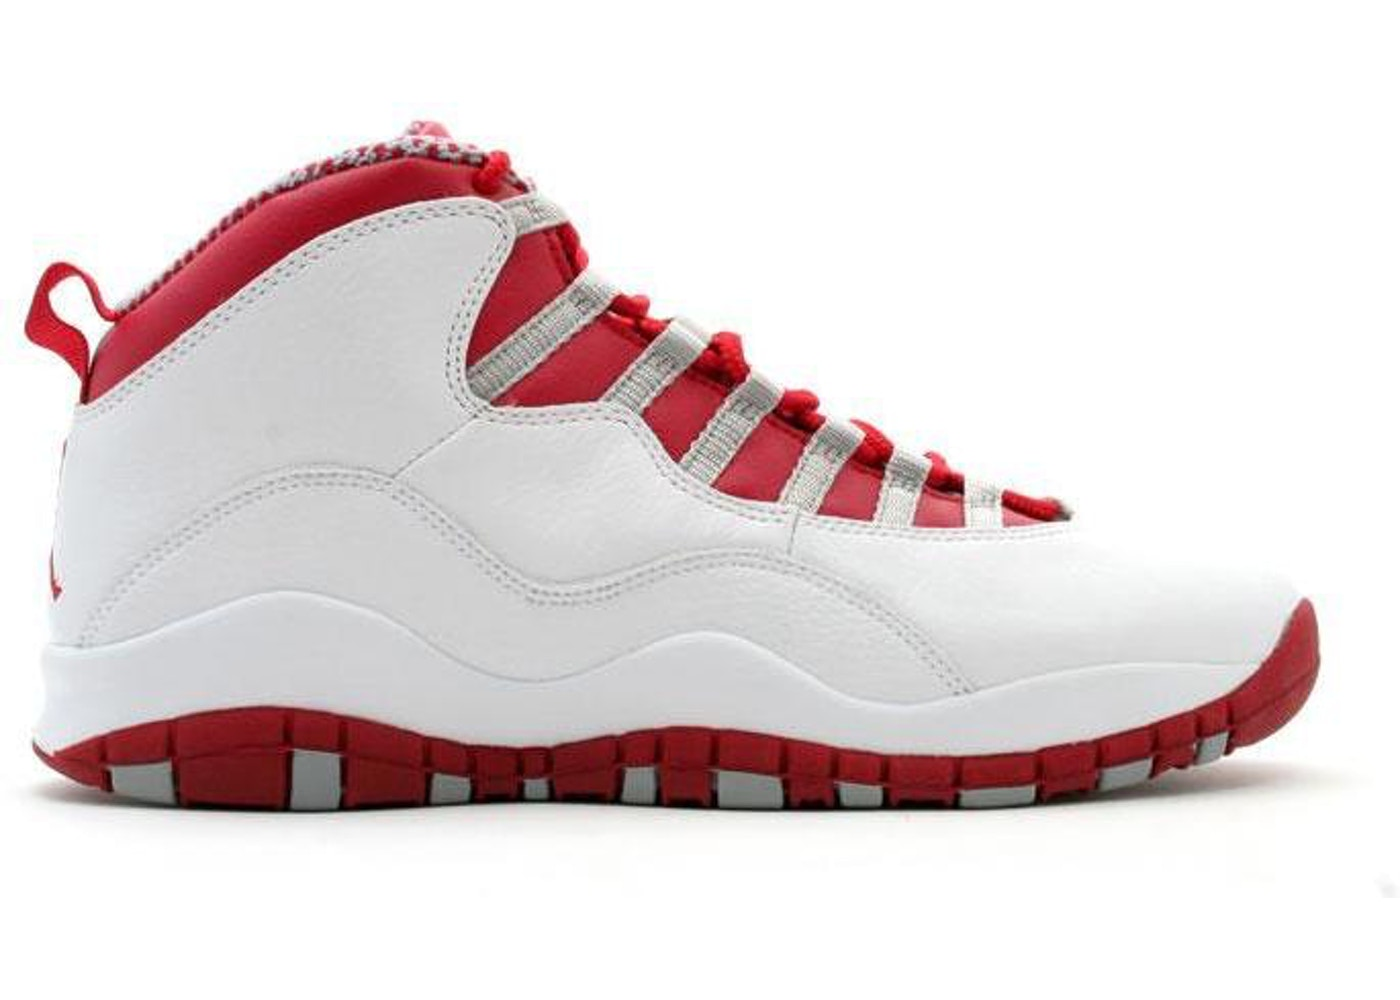 online store 3e968 53671 Buy Air Jordan 10 Shoes & Deadstock Sneakers